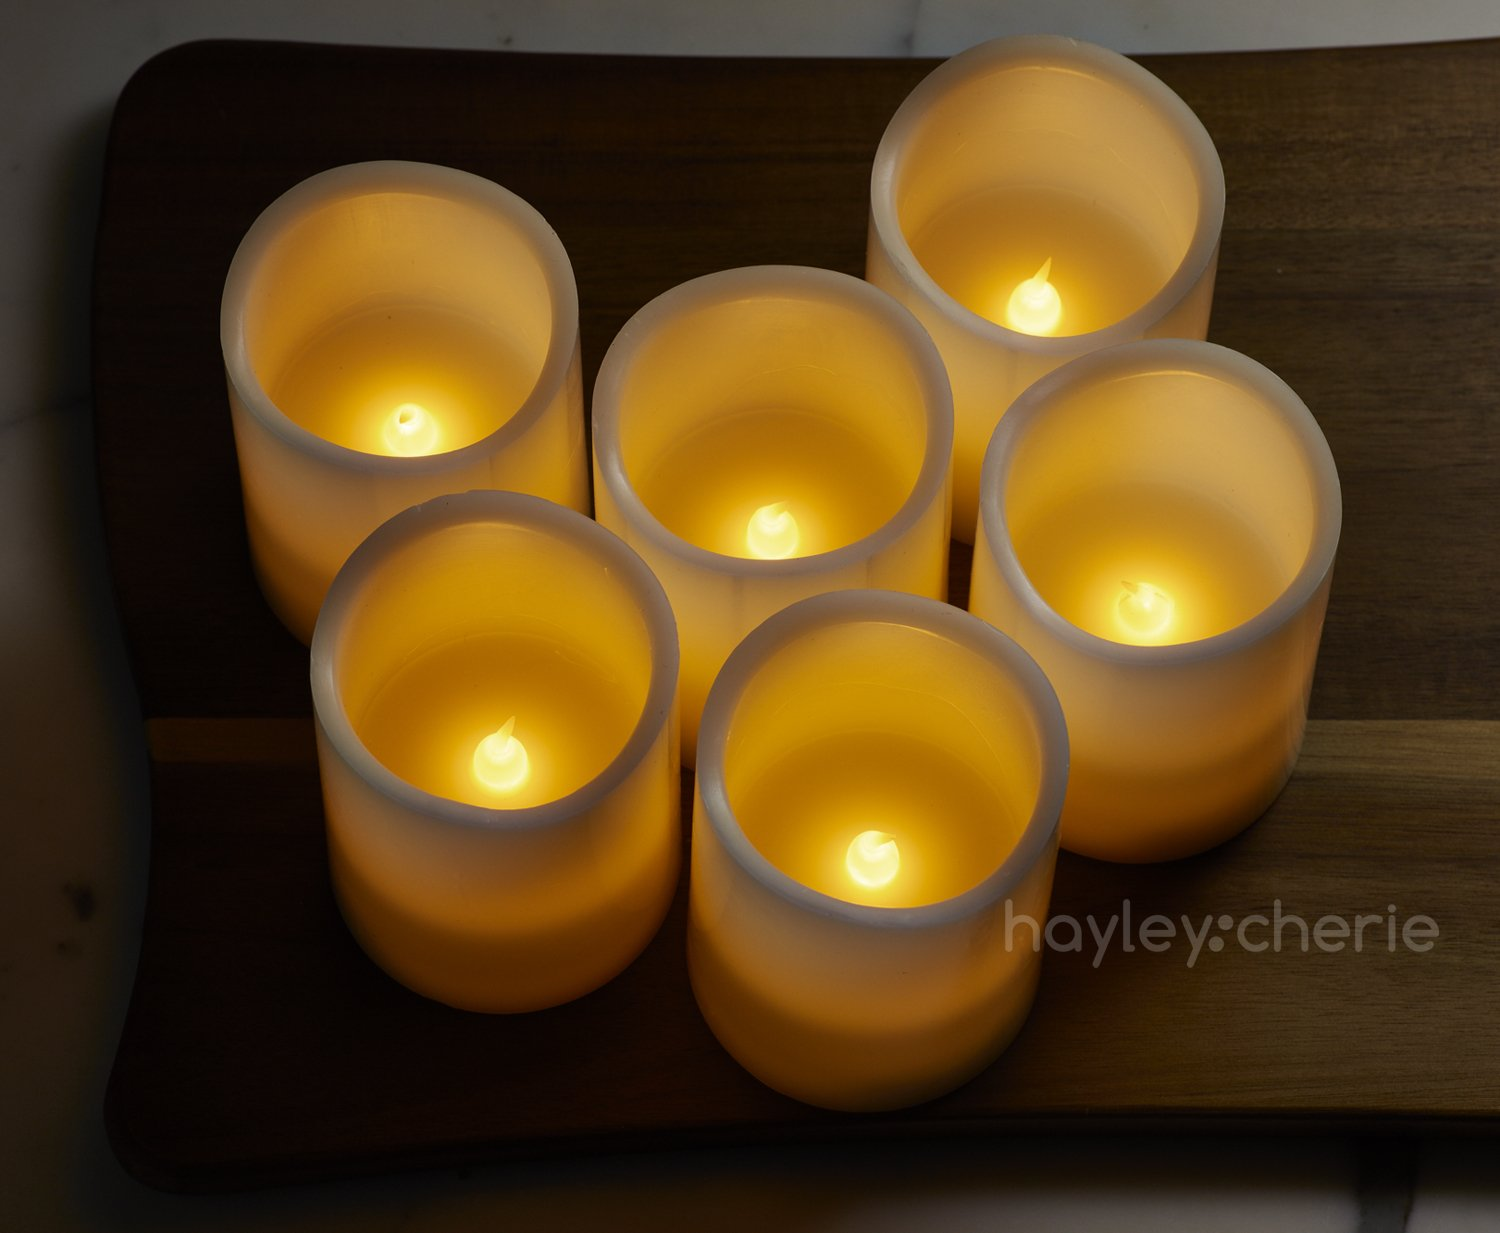 "Hayley Cherie - Real Wax Flameless Candles with Timer (Set of 6) - Ivory LED Candles 3"" wide x 4"" tall - Flickering Amber Flame - Battery Operated Pillar Candles - Large Unscented by Hayley Cherie (Image #3)"